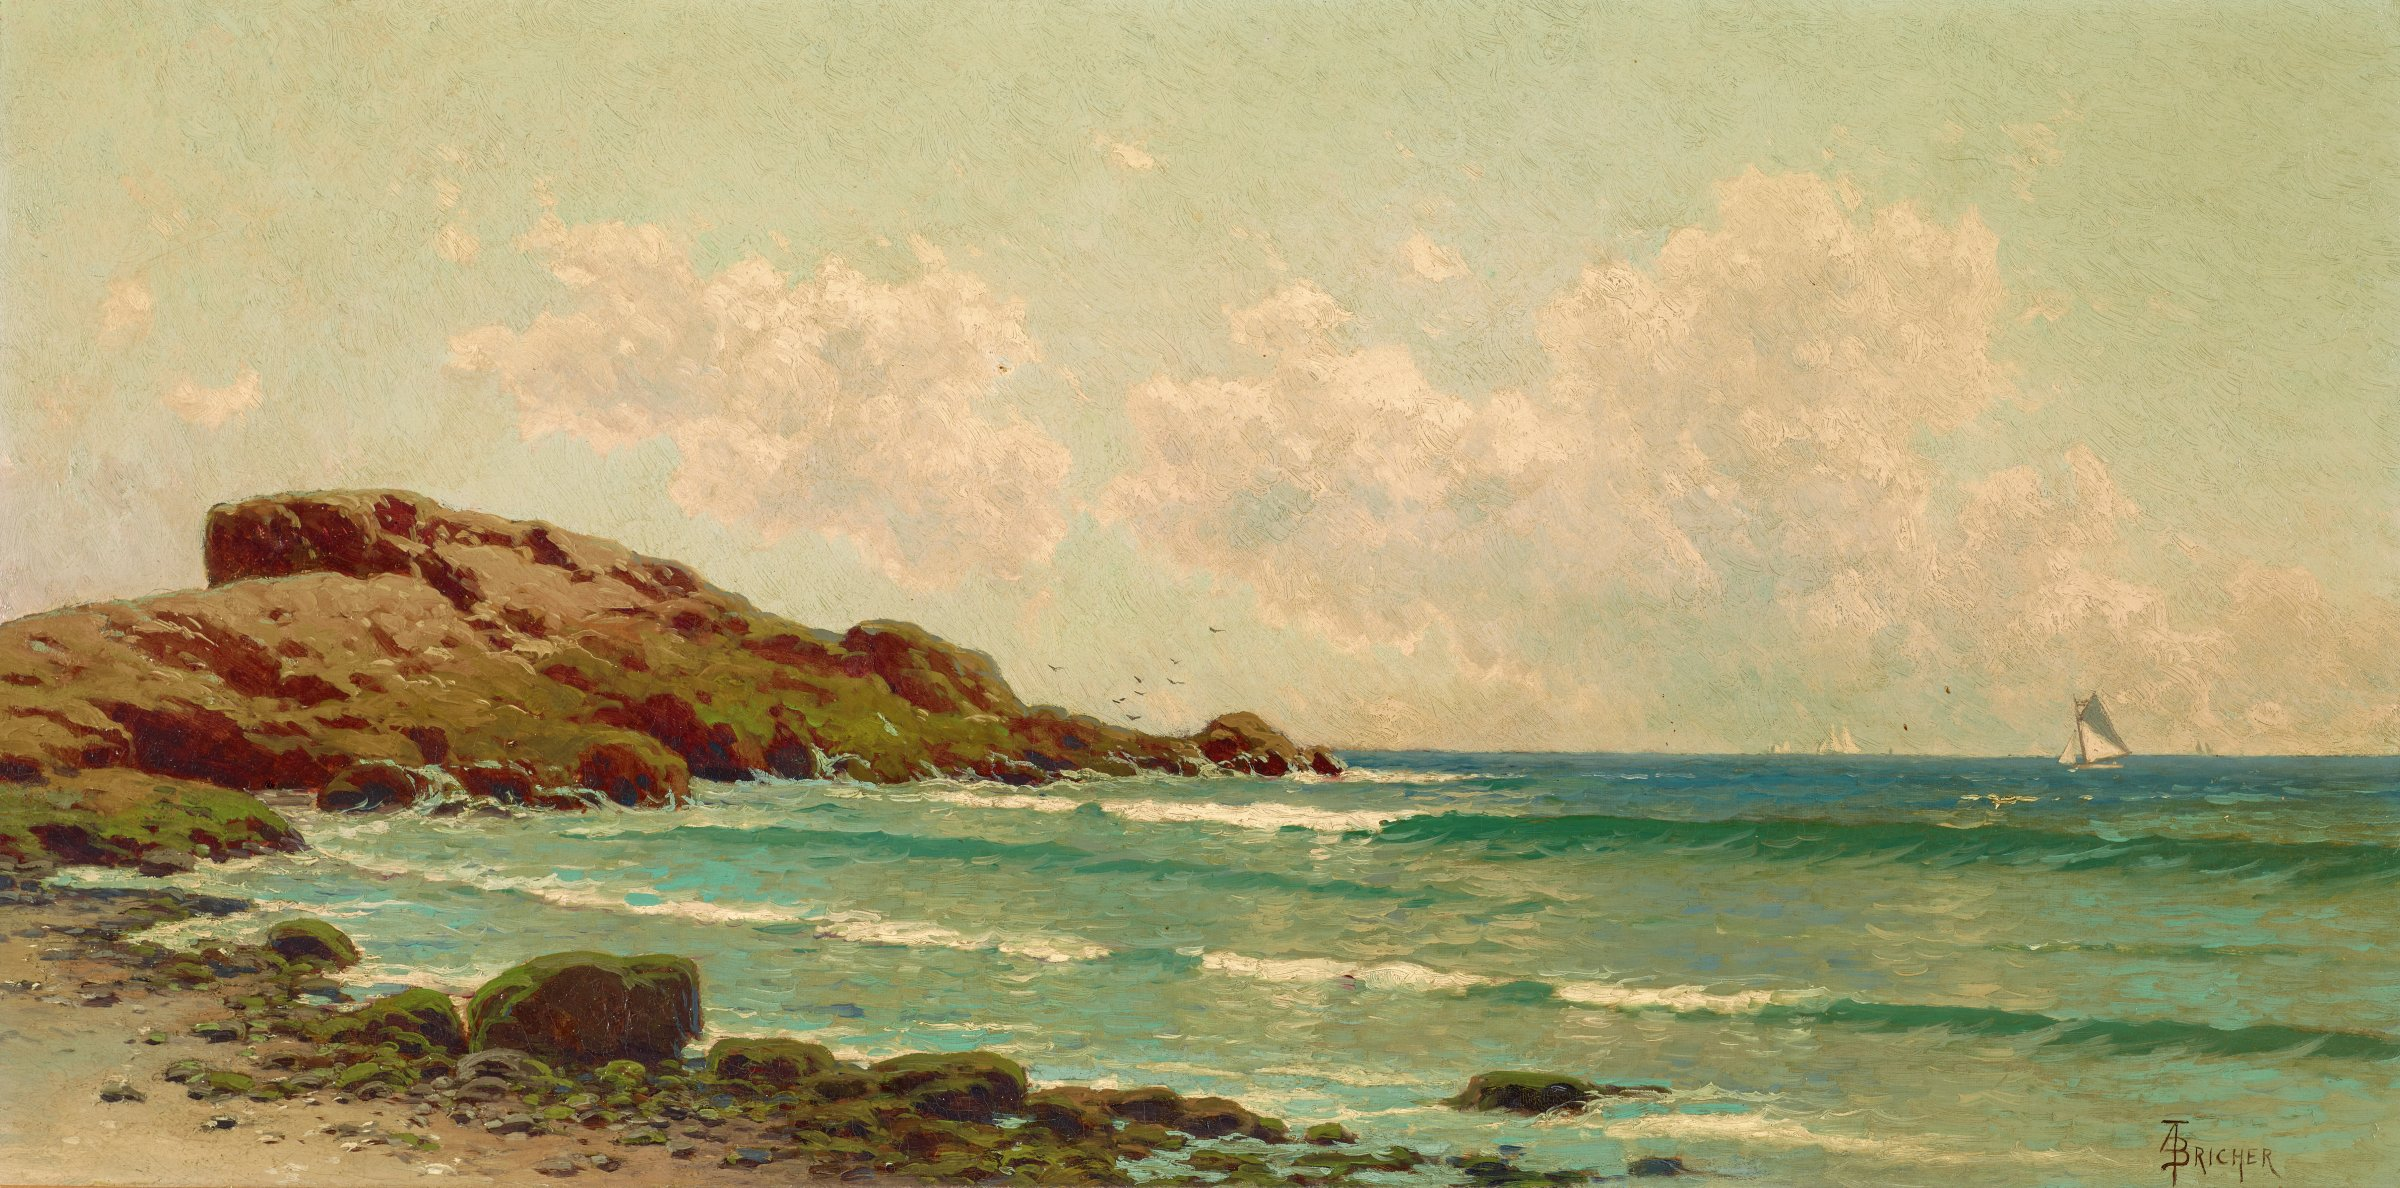 This painting represents a seascape with two waves rolling into shore breaking at the right of the composition. They break onto a rocky coastline that begins in lower center of the painting and extends up the left side of the painting. The rocks become a natural jetty that curves out to sea from the center left edge of the painting. One sailboat is close to shore and clearly identifiable, while a number of sailboats can be seen on the distant horizon.